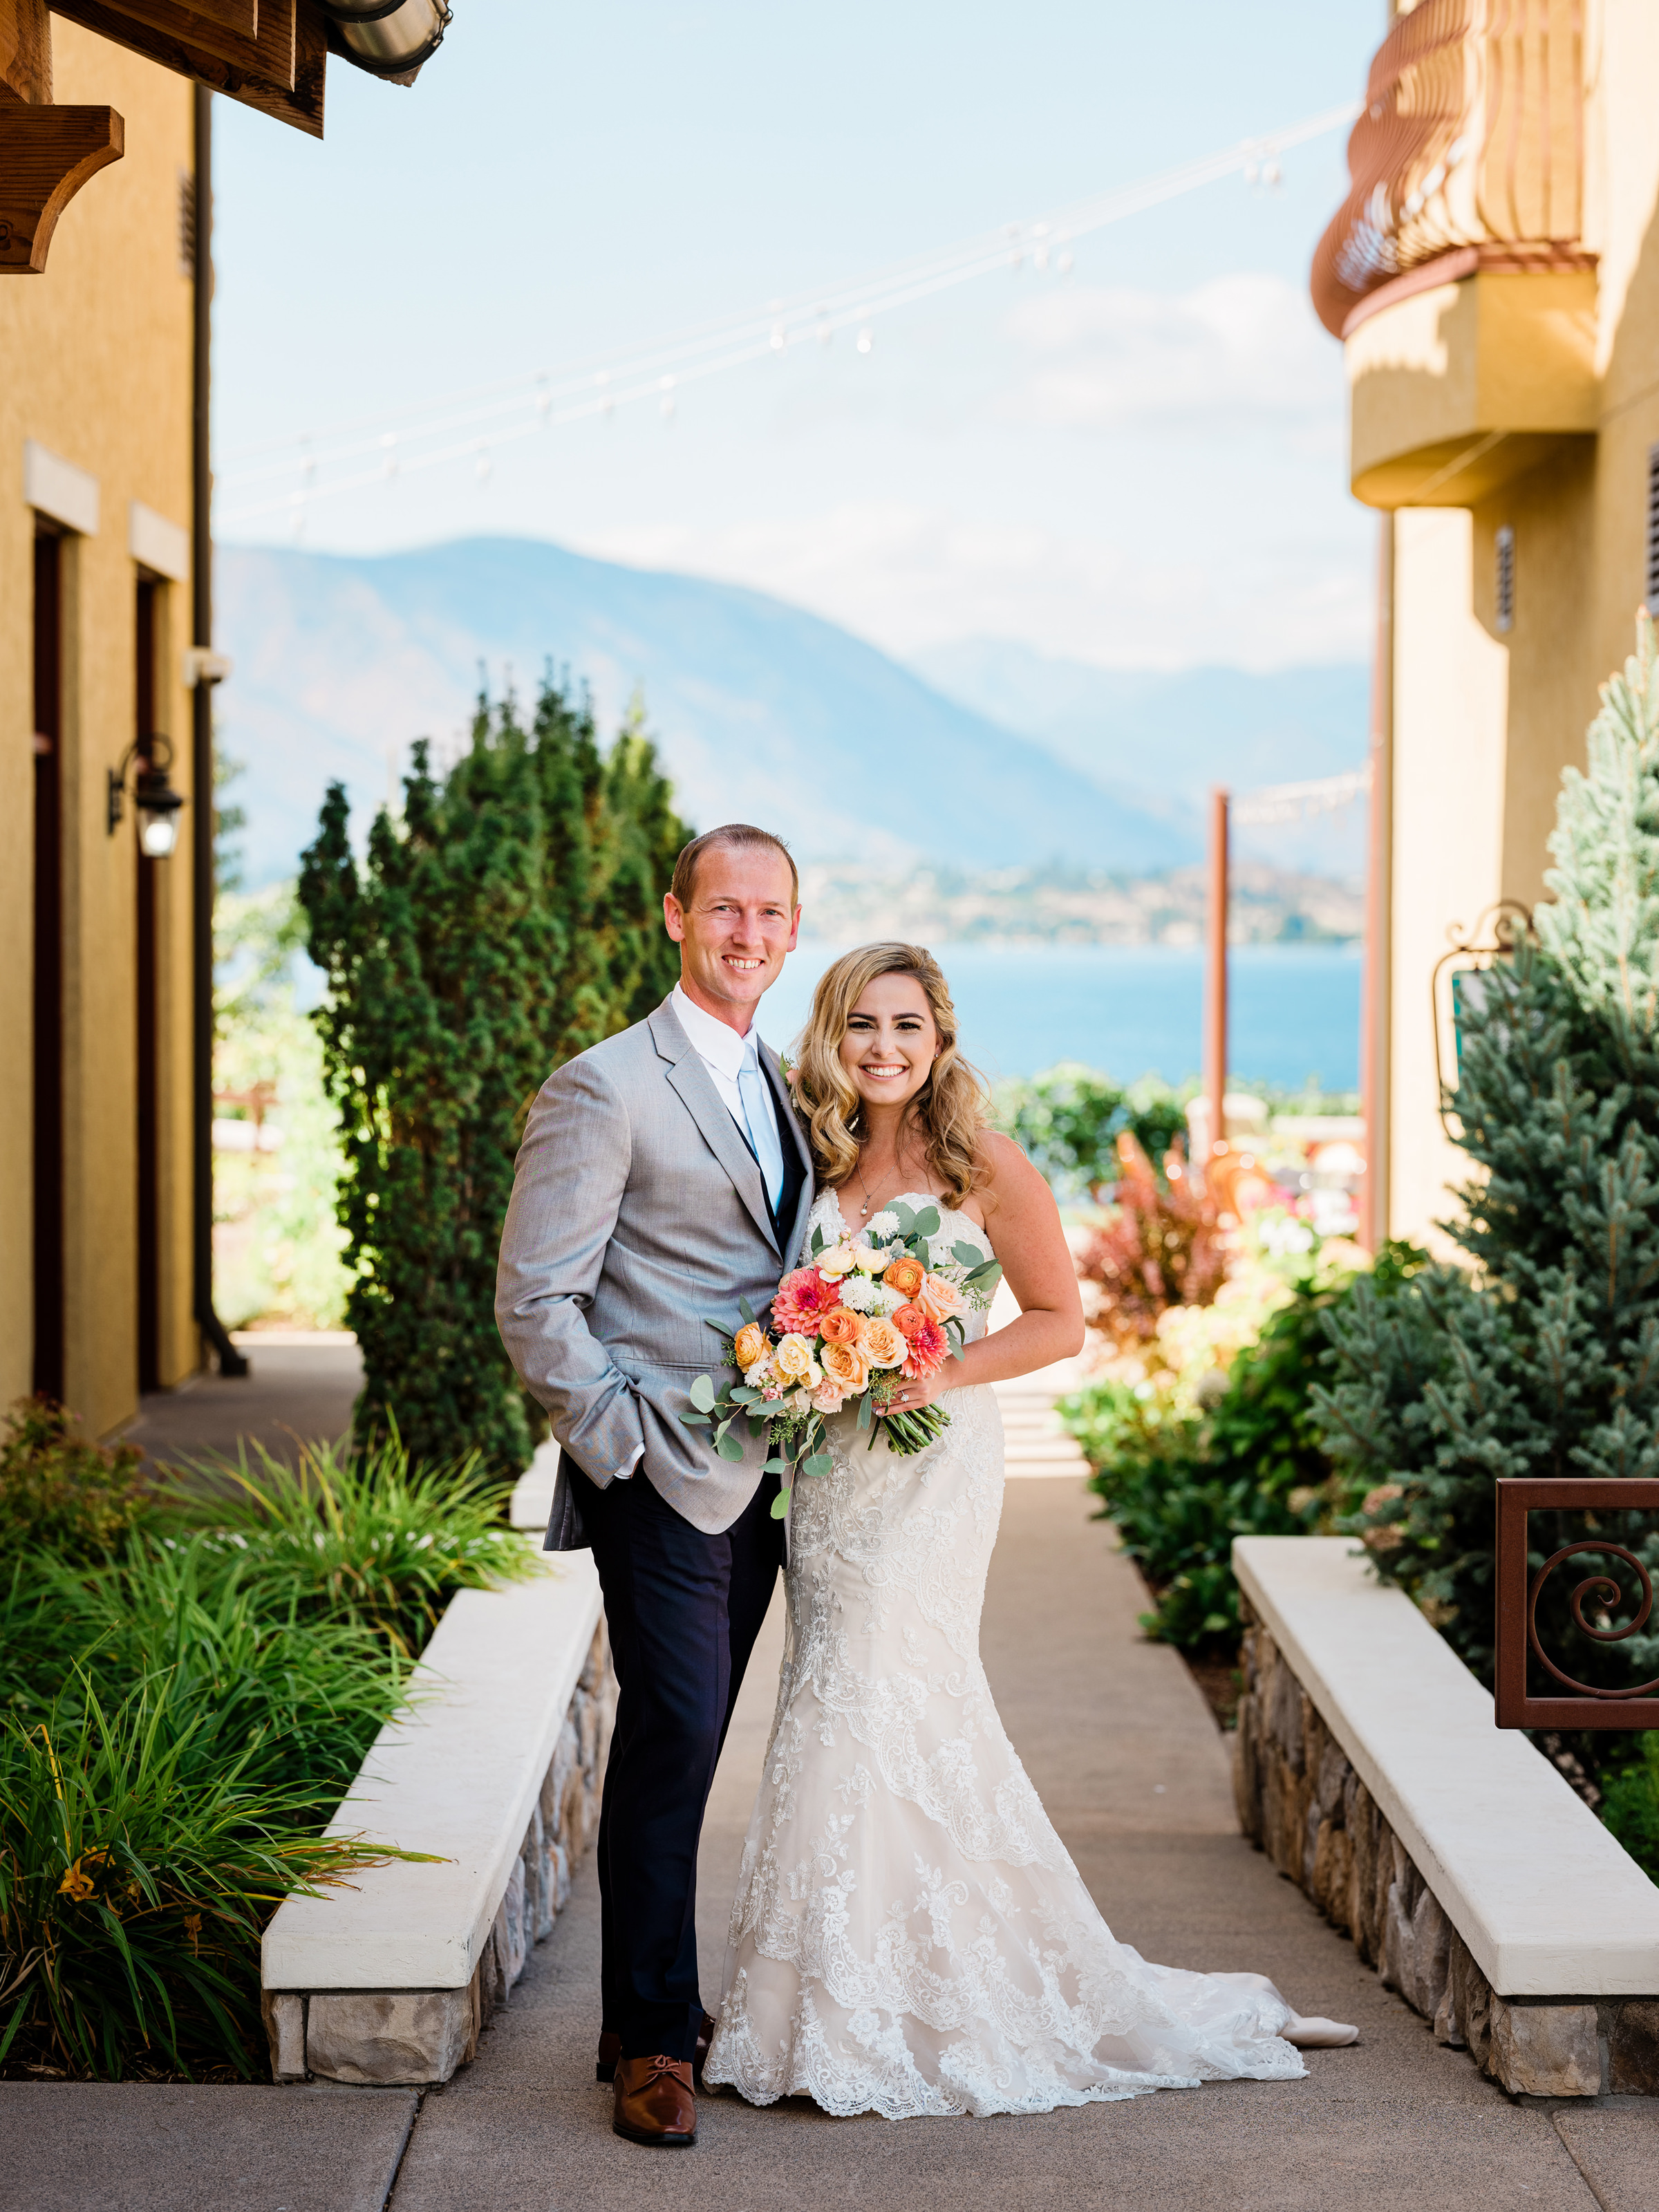 Scenic winery couple pose - photo by Alante Photography